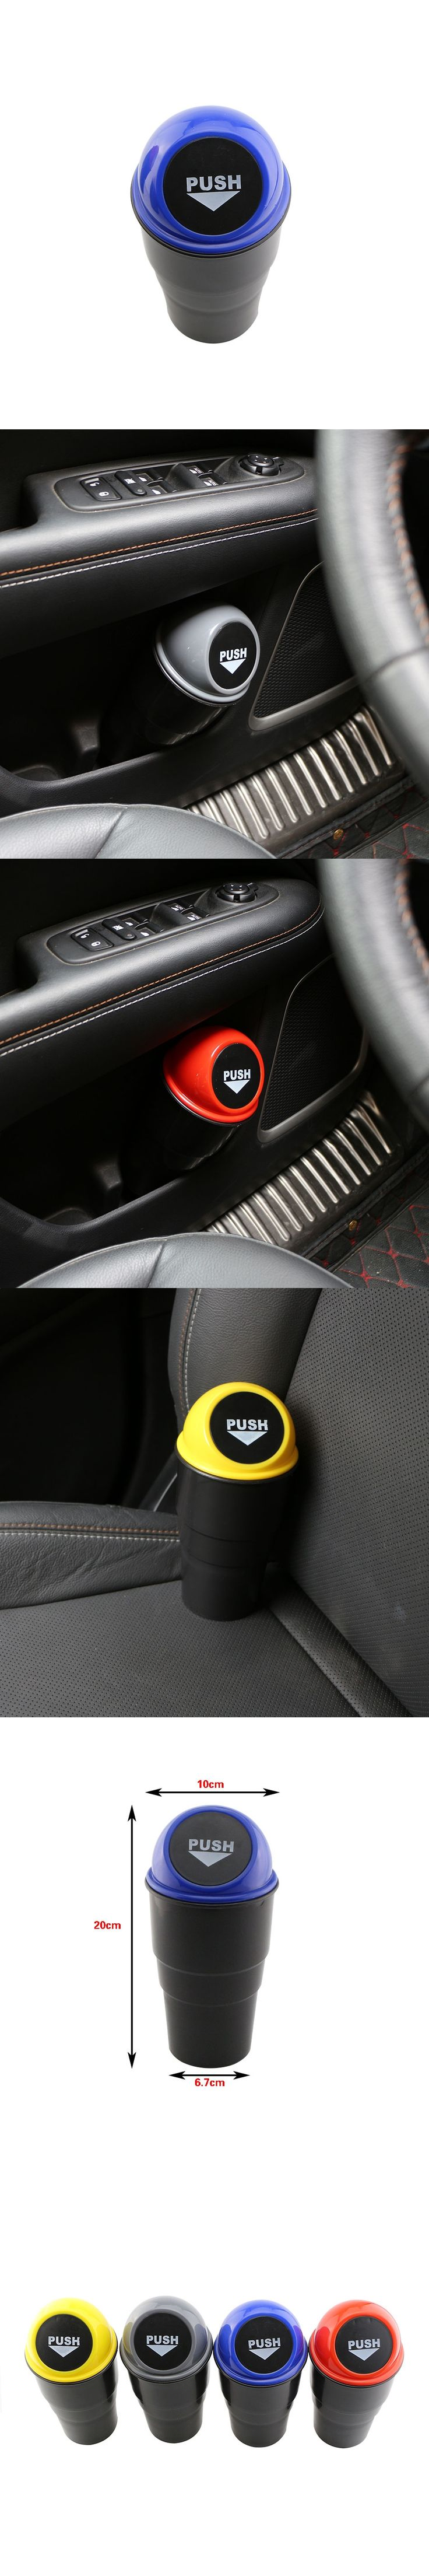 New Hot 1 Set Car Trash Can Garbage Dust for For Audi Q2 Q3 Q5 SQ5 Q7 A1 A2 A3 A4 A4L A5 A6 A6L A7 S5 A8 Any Car Accessories